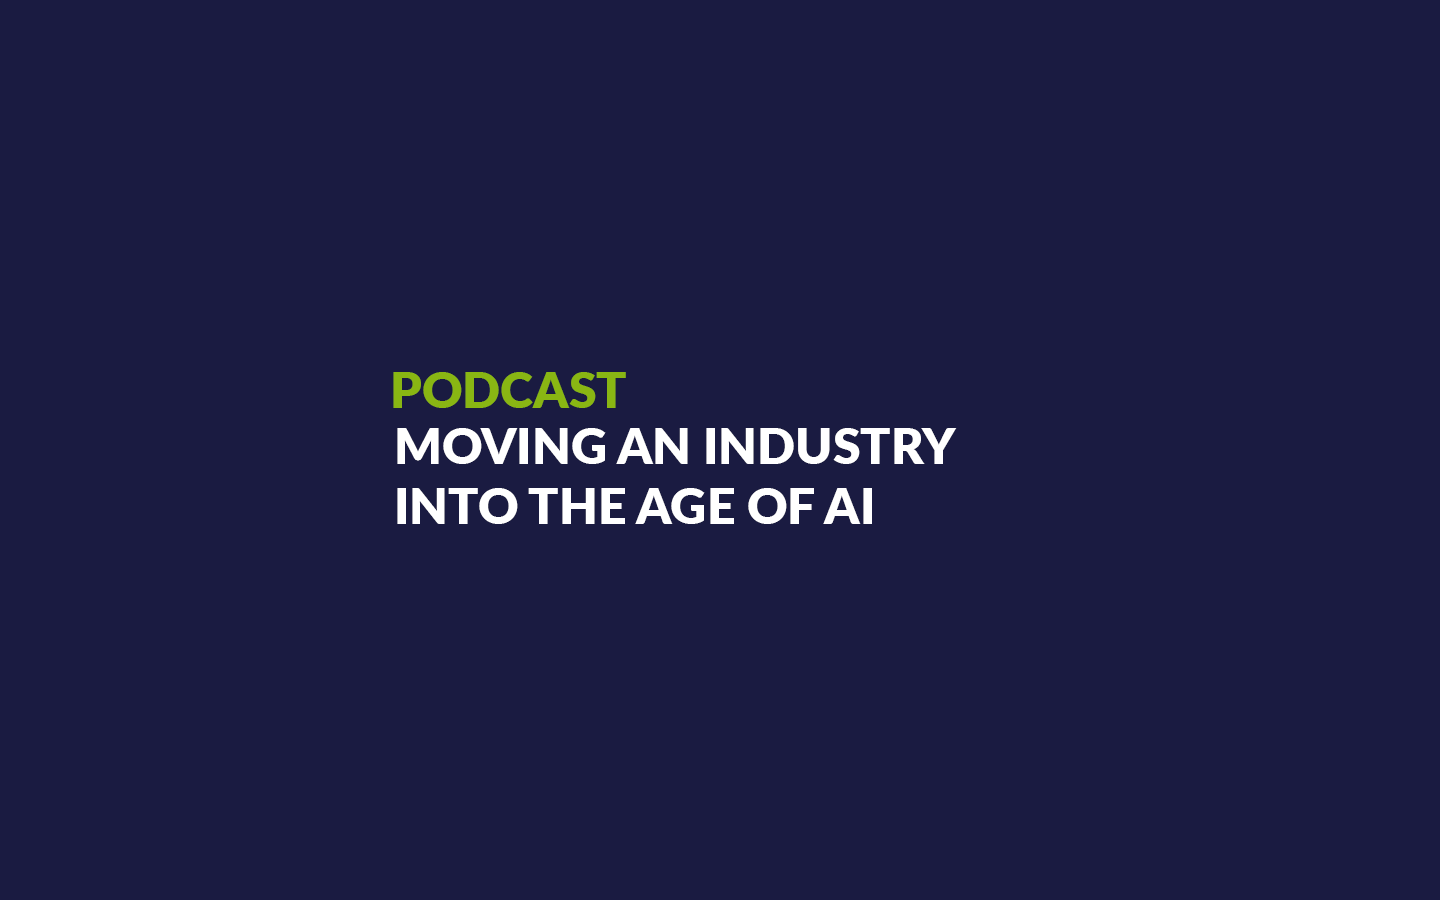 Podcast: Moving an Industry into the Age of AI with Martin Stamenov (Team Lead Machine Learning)